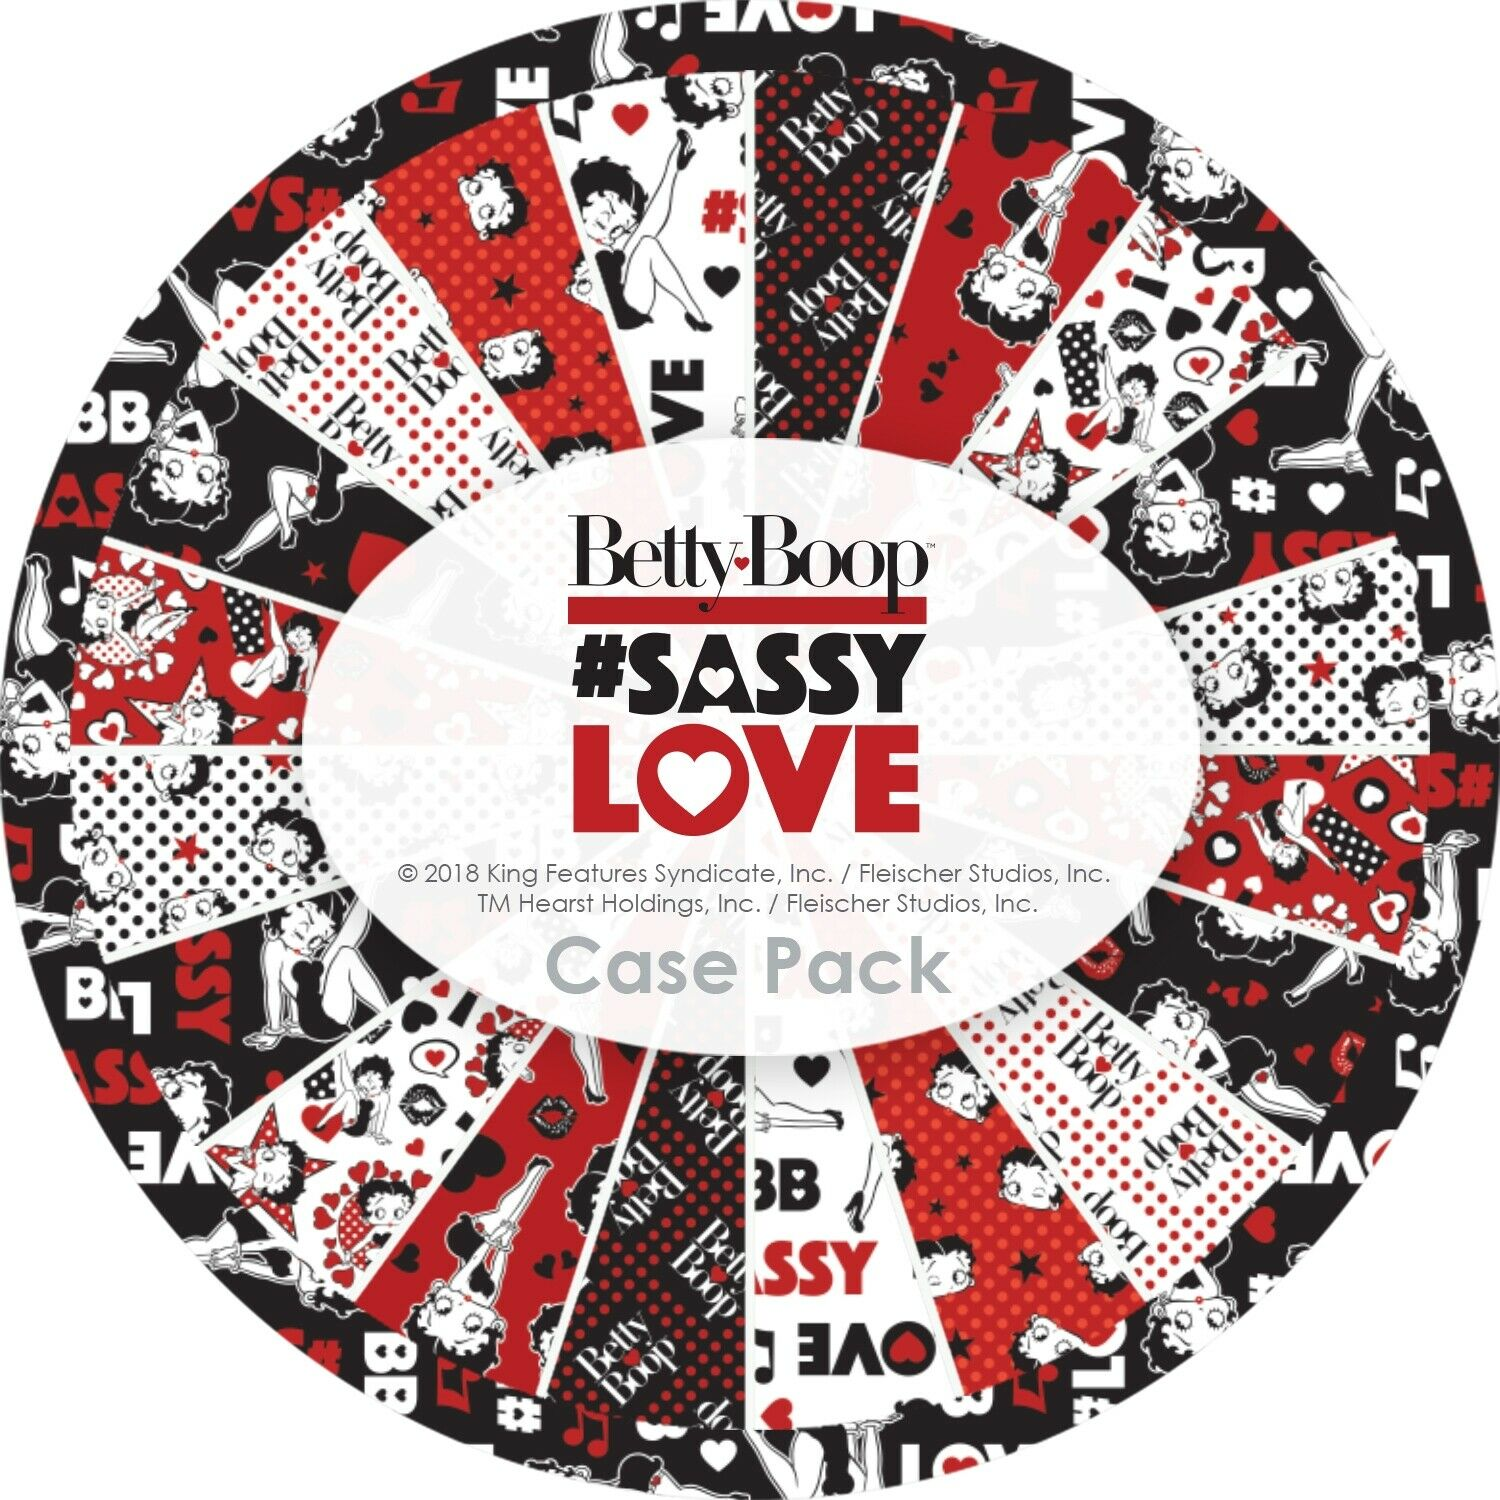 BETTY BOOP SASSY LOVE COLLECTION BY CAMELOT FABRICS (40) 2.5 FABRIC STRIPS